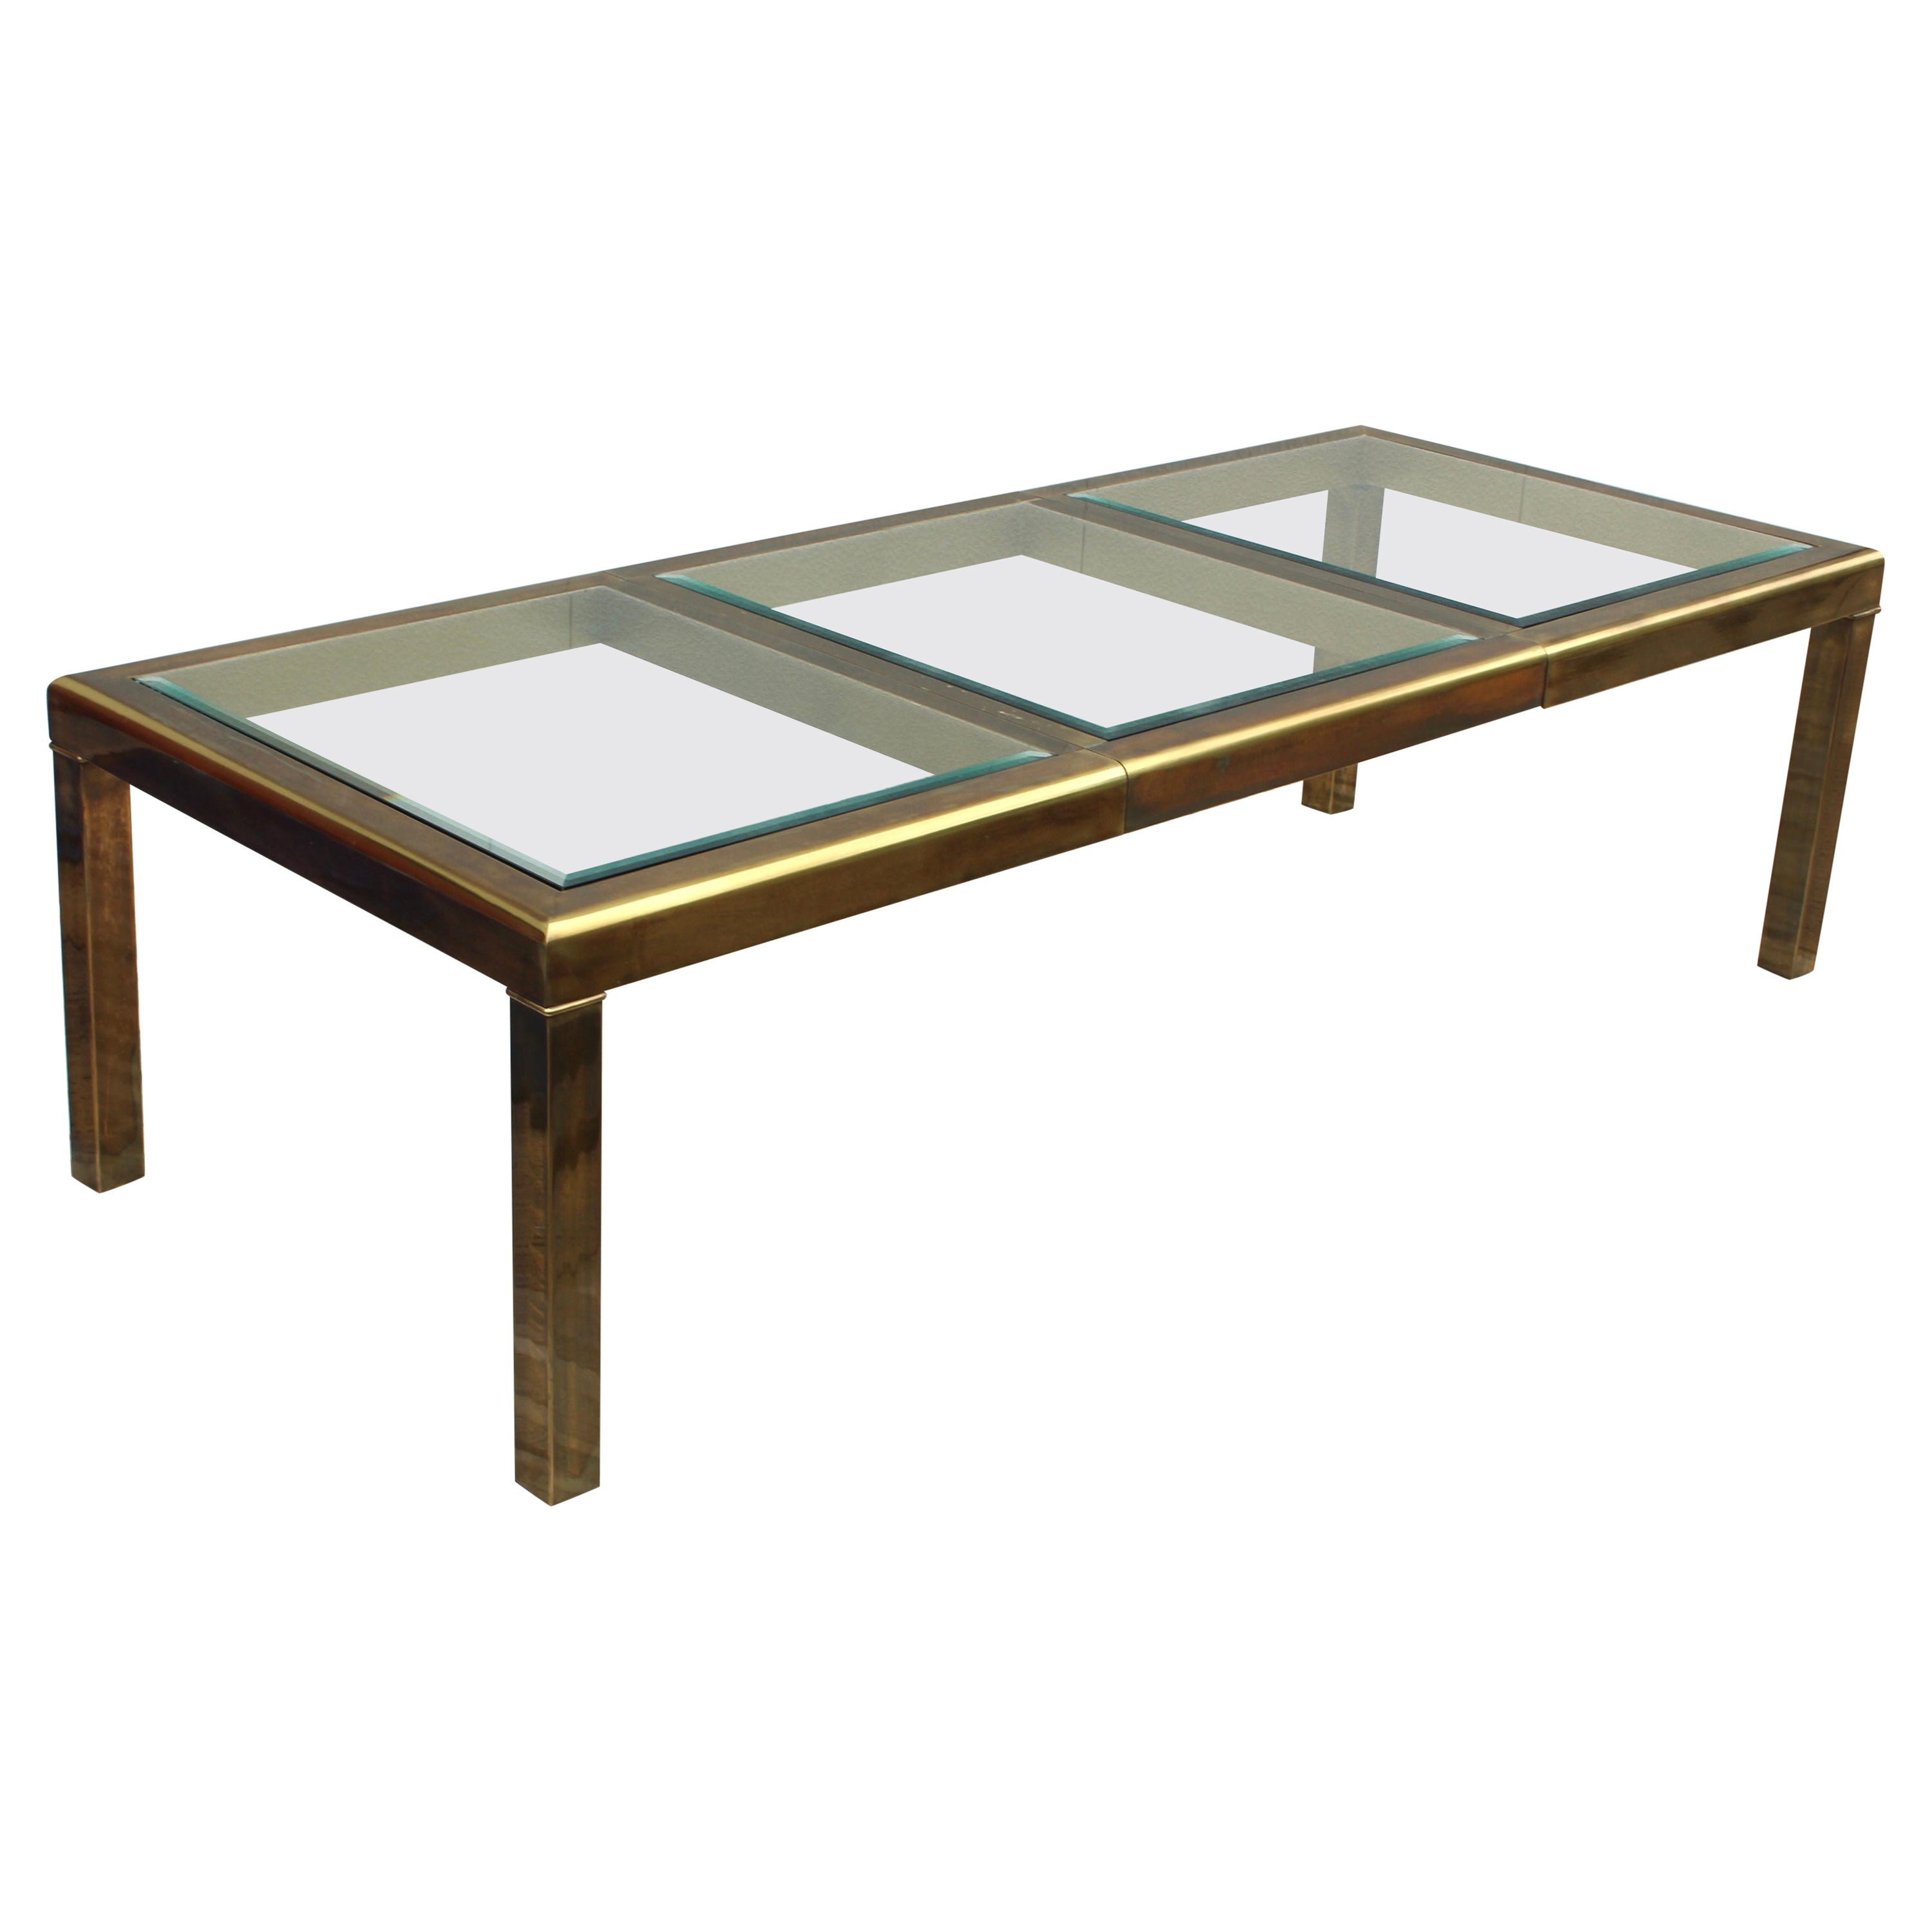 1970's Mastercraft Patinated Brass Dining Table